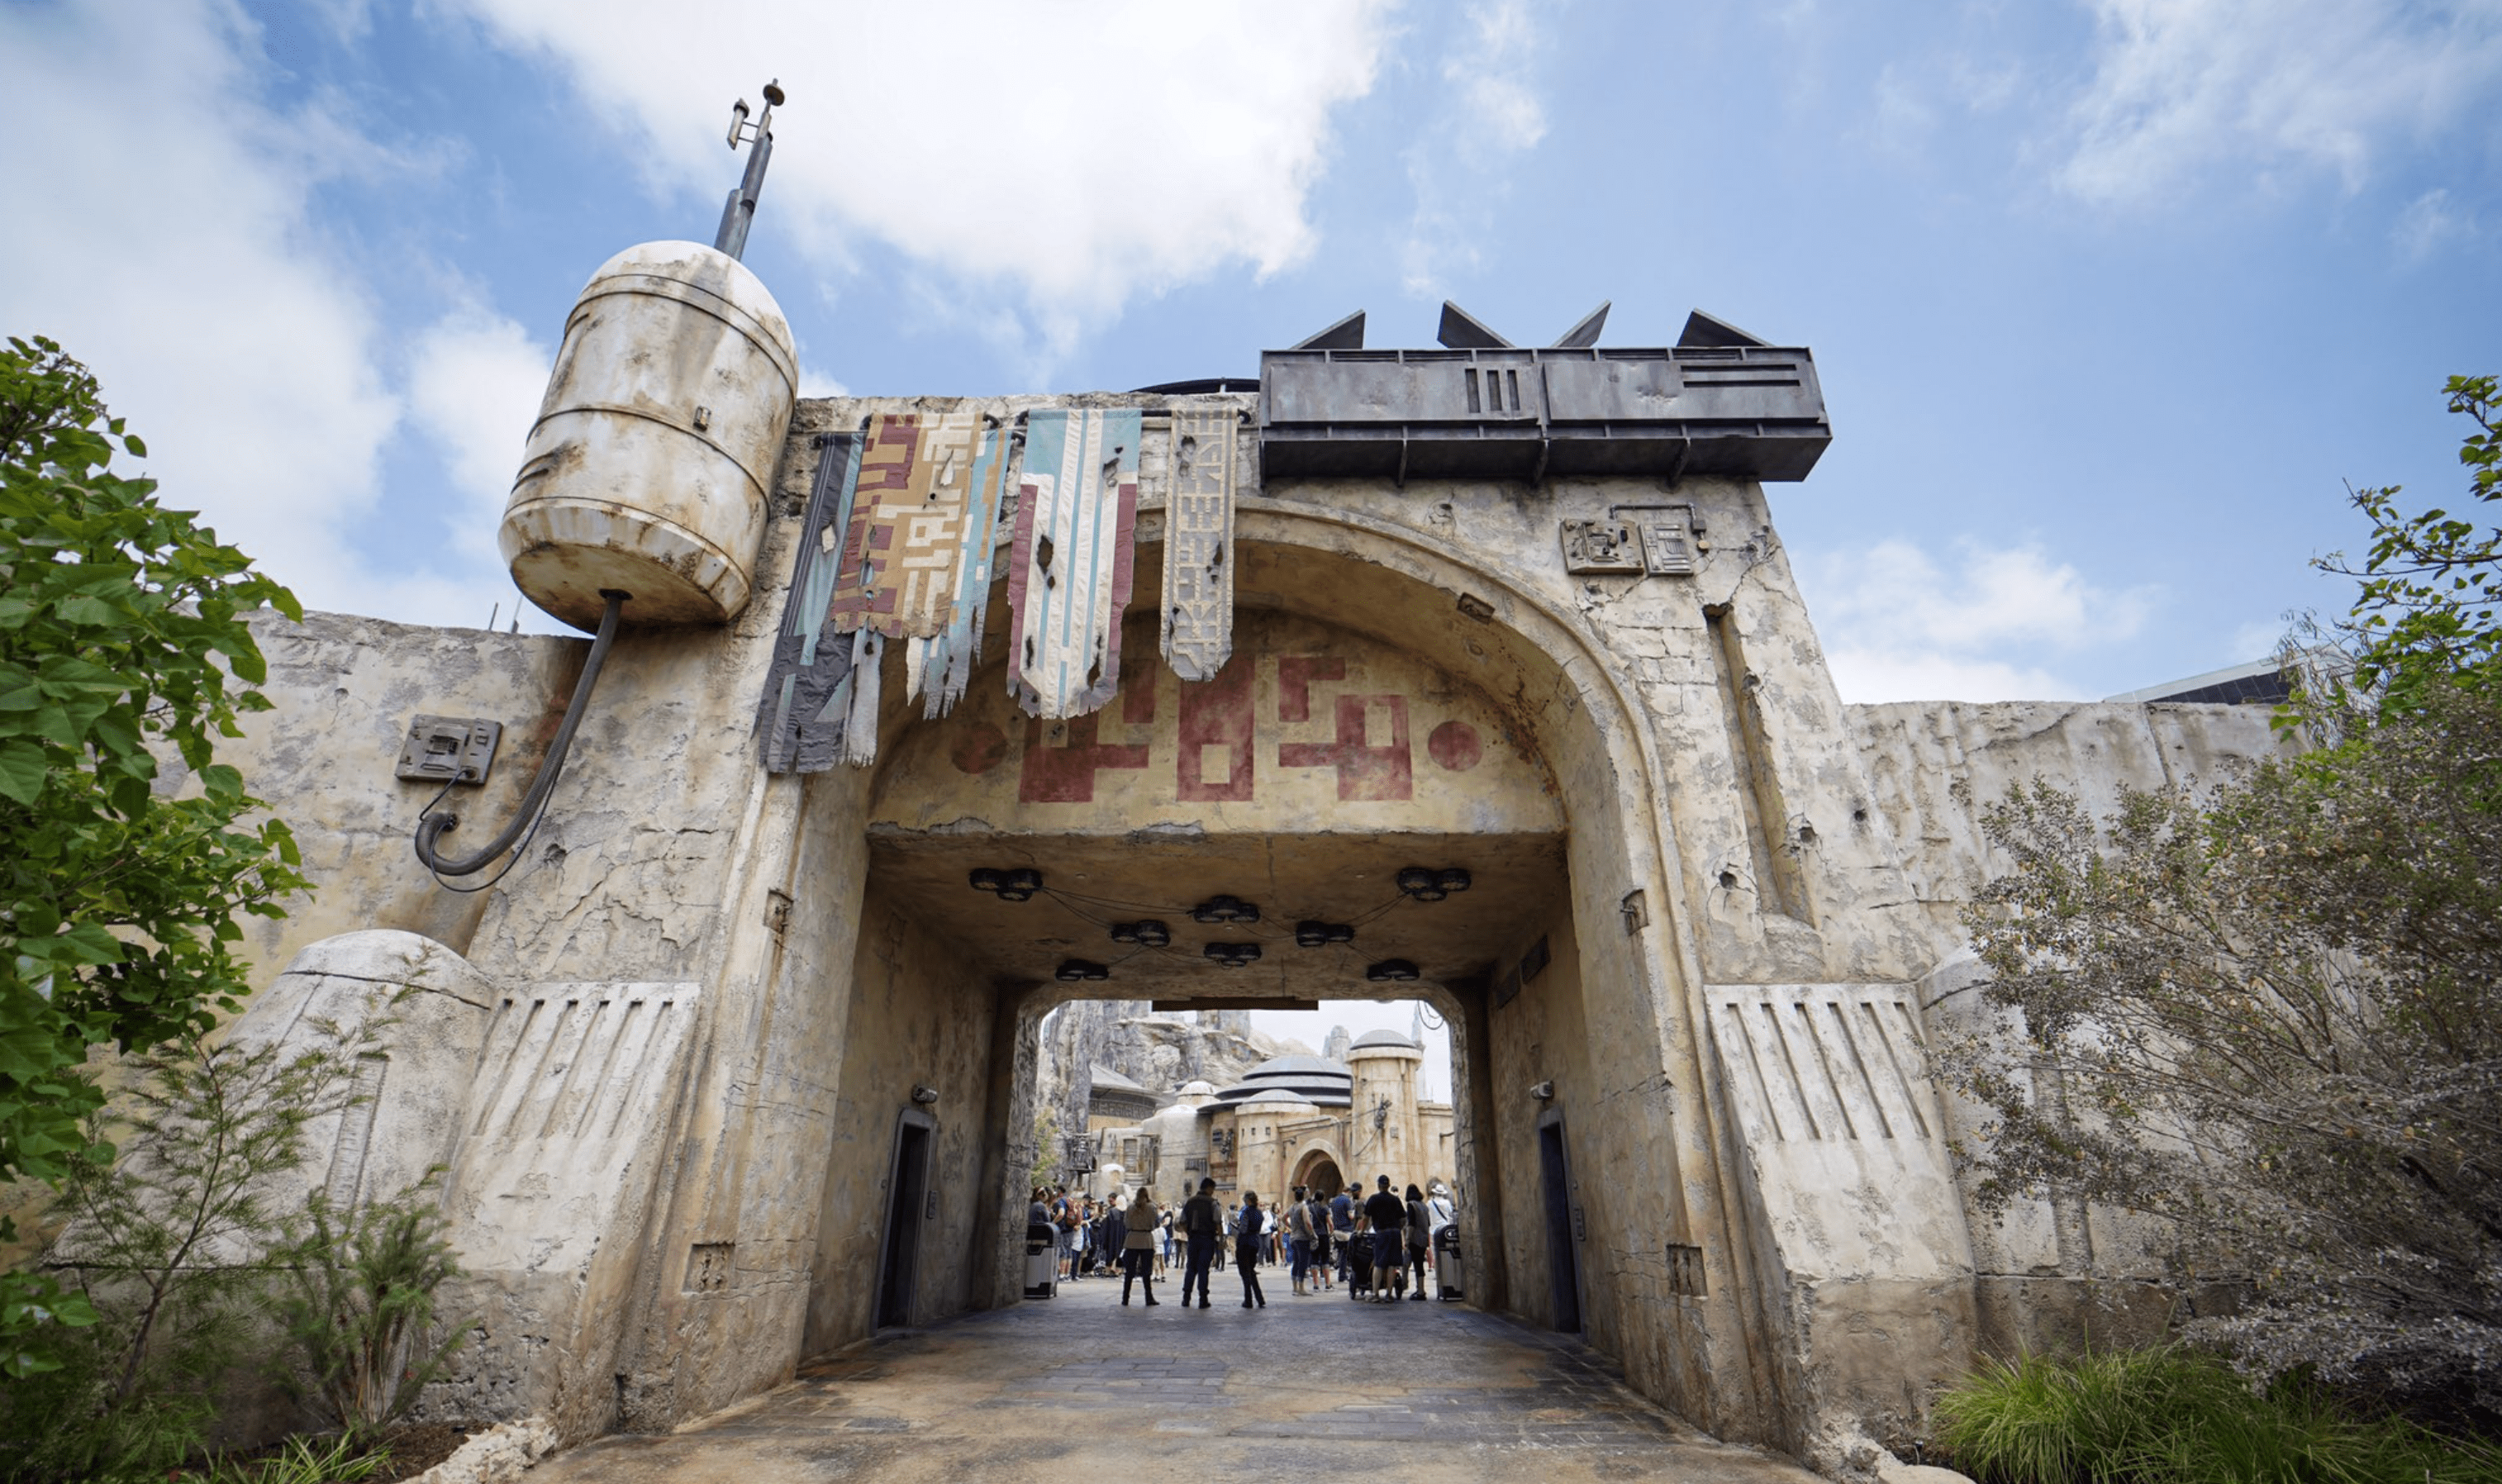 Star Wars: Galaxy's Edge Entrance